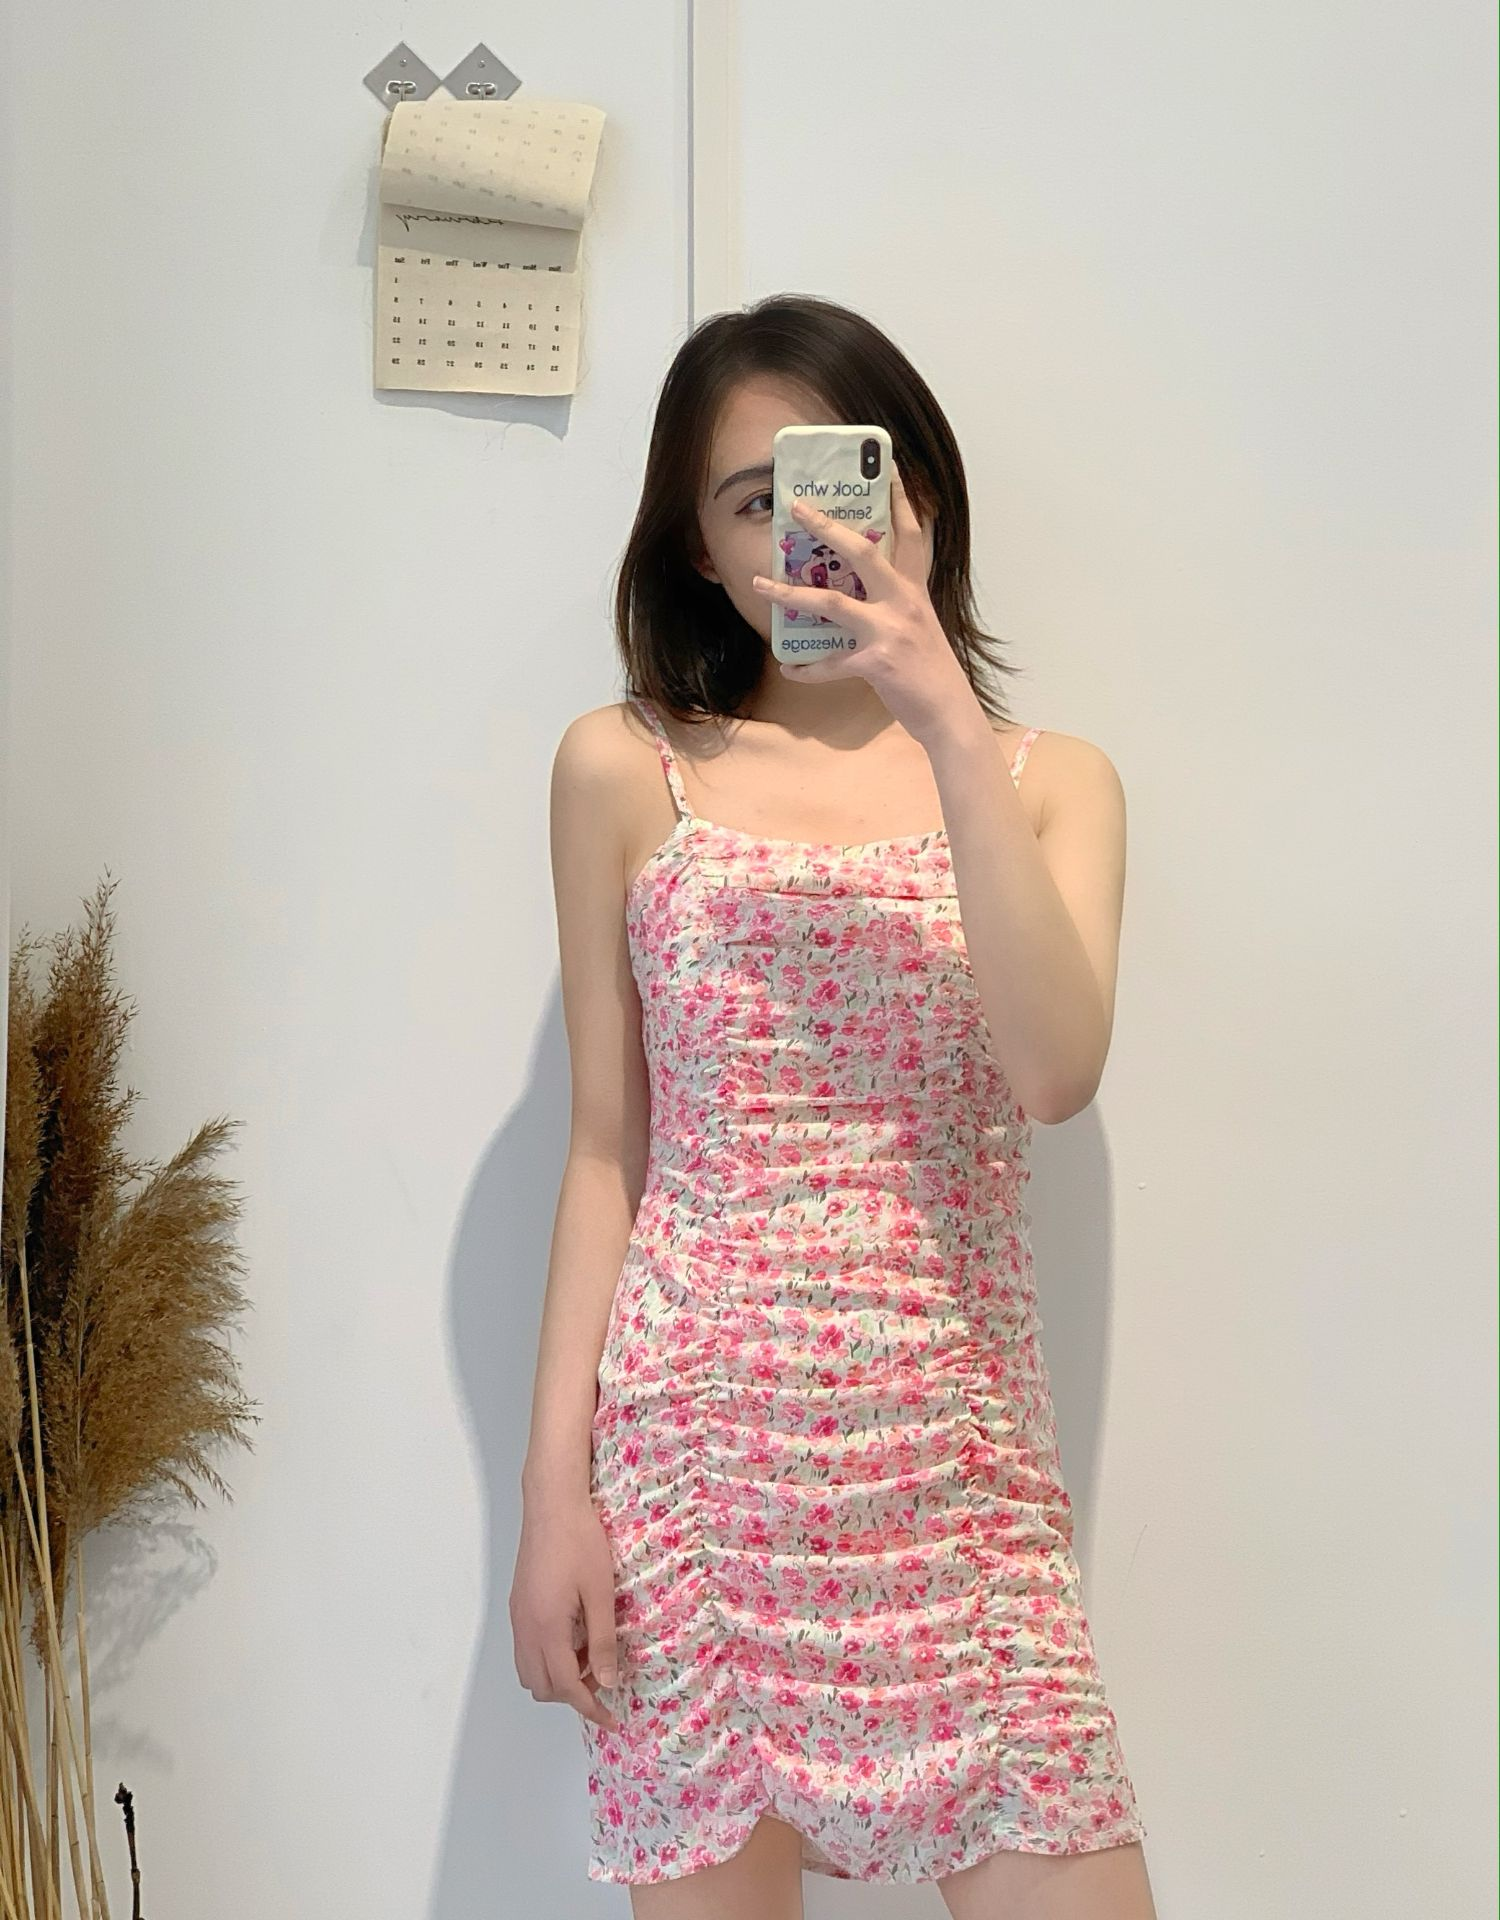 Newest elegant style backless women pink spaghetti strap dress sweet blue floral lady gathered mini dresses